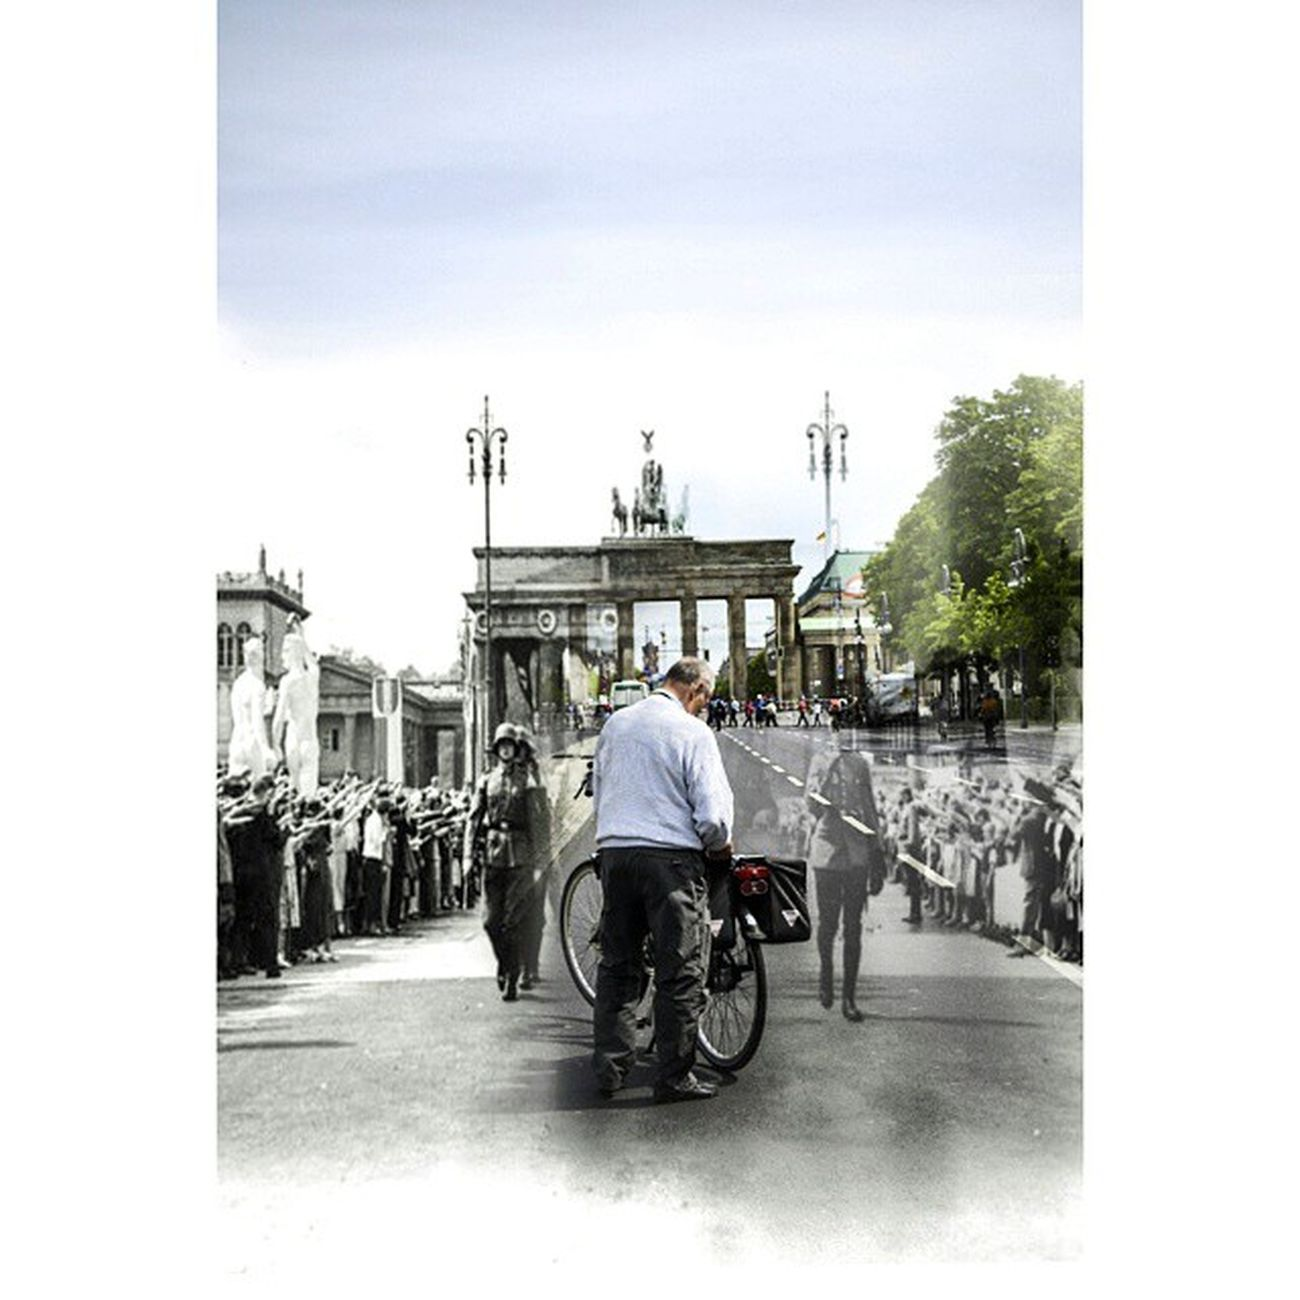 Brandenburg Tor 1936 - 2015 Berlim Berlin Berliner Iloveberlin Branderburgertor War Second Bike